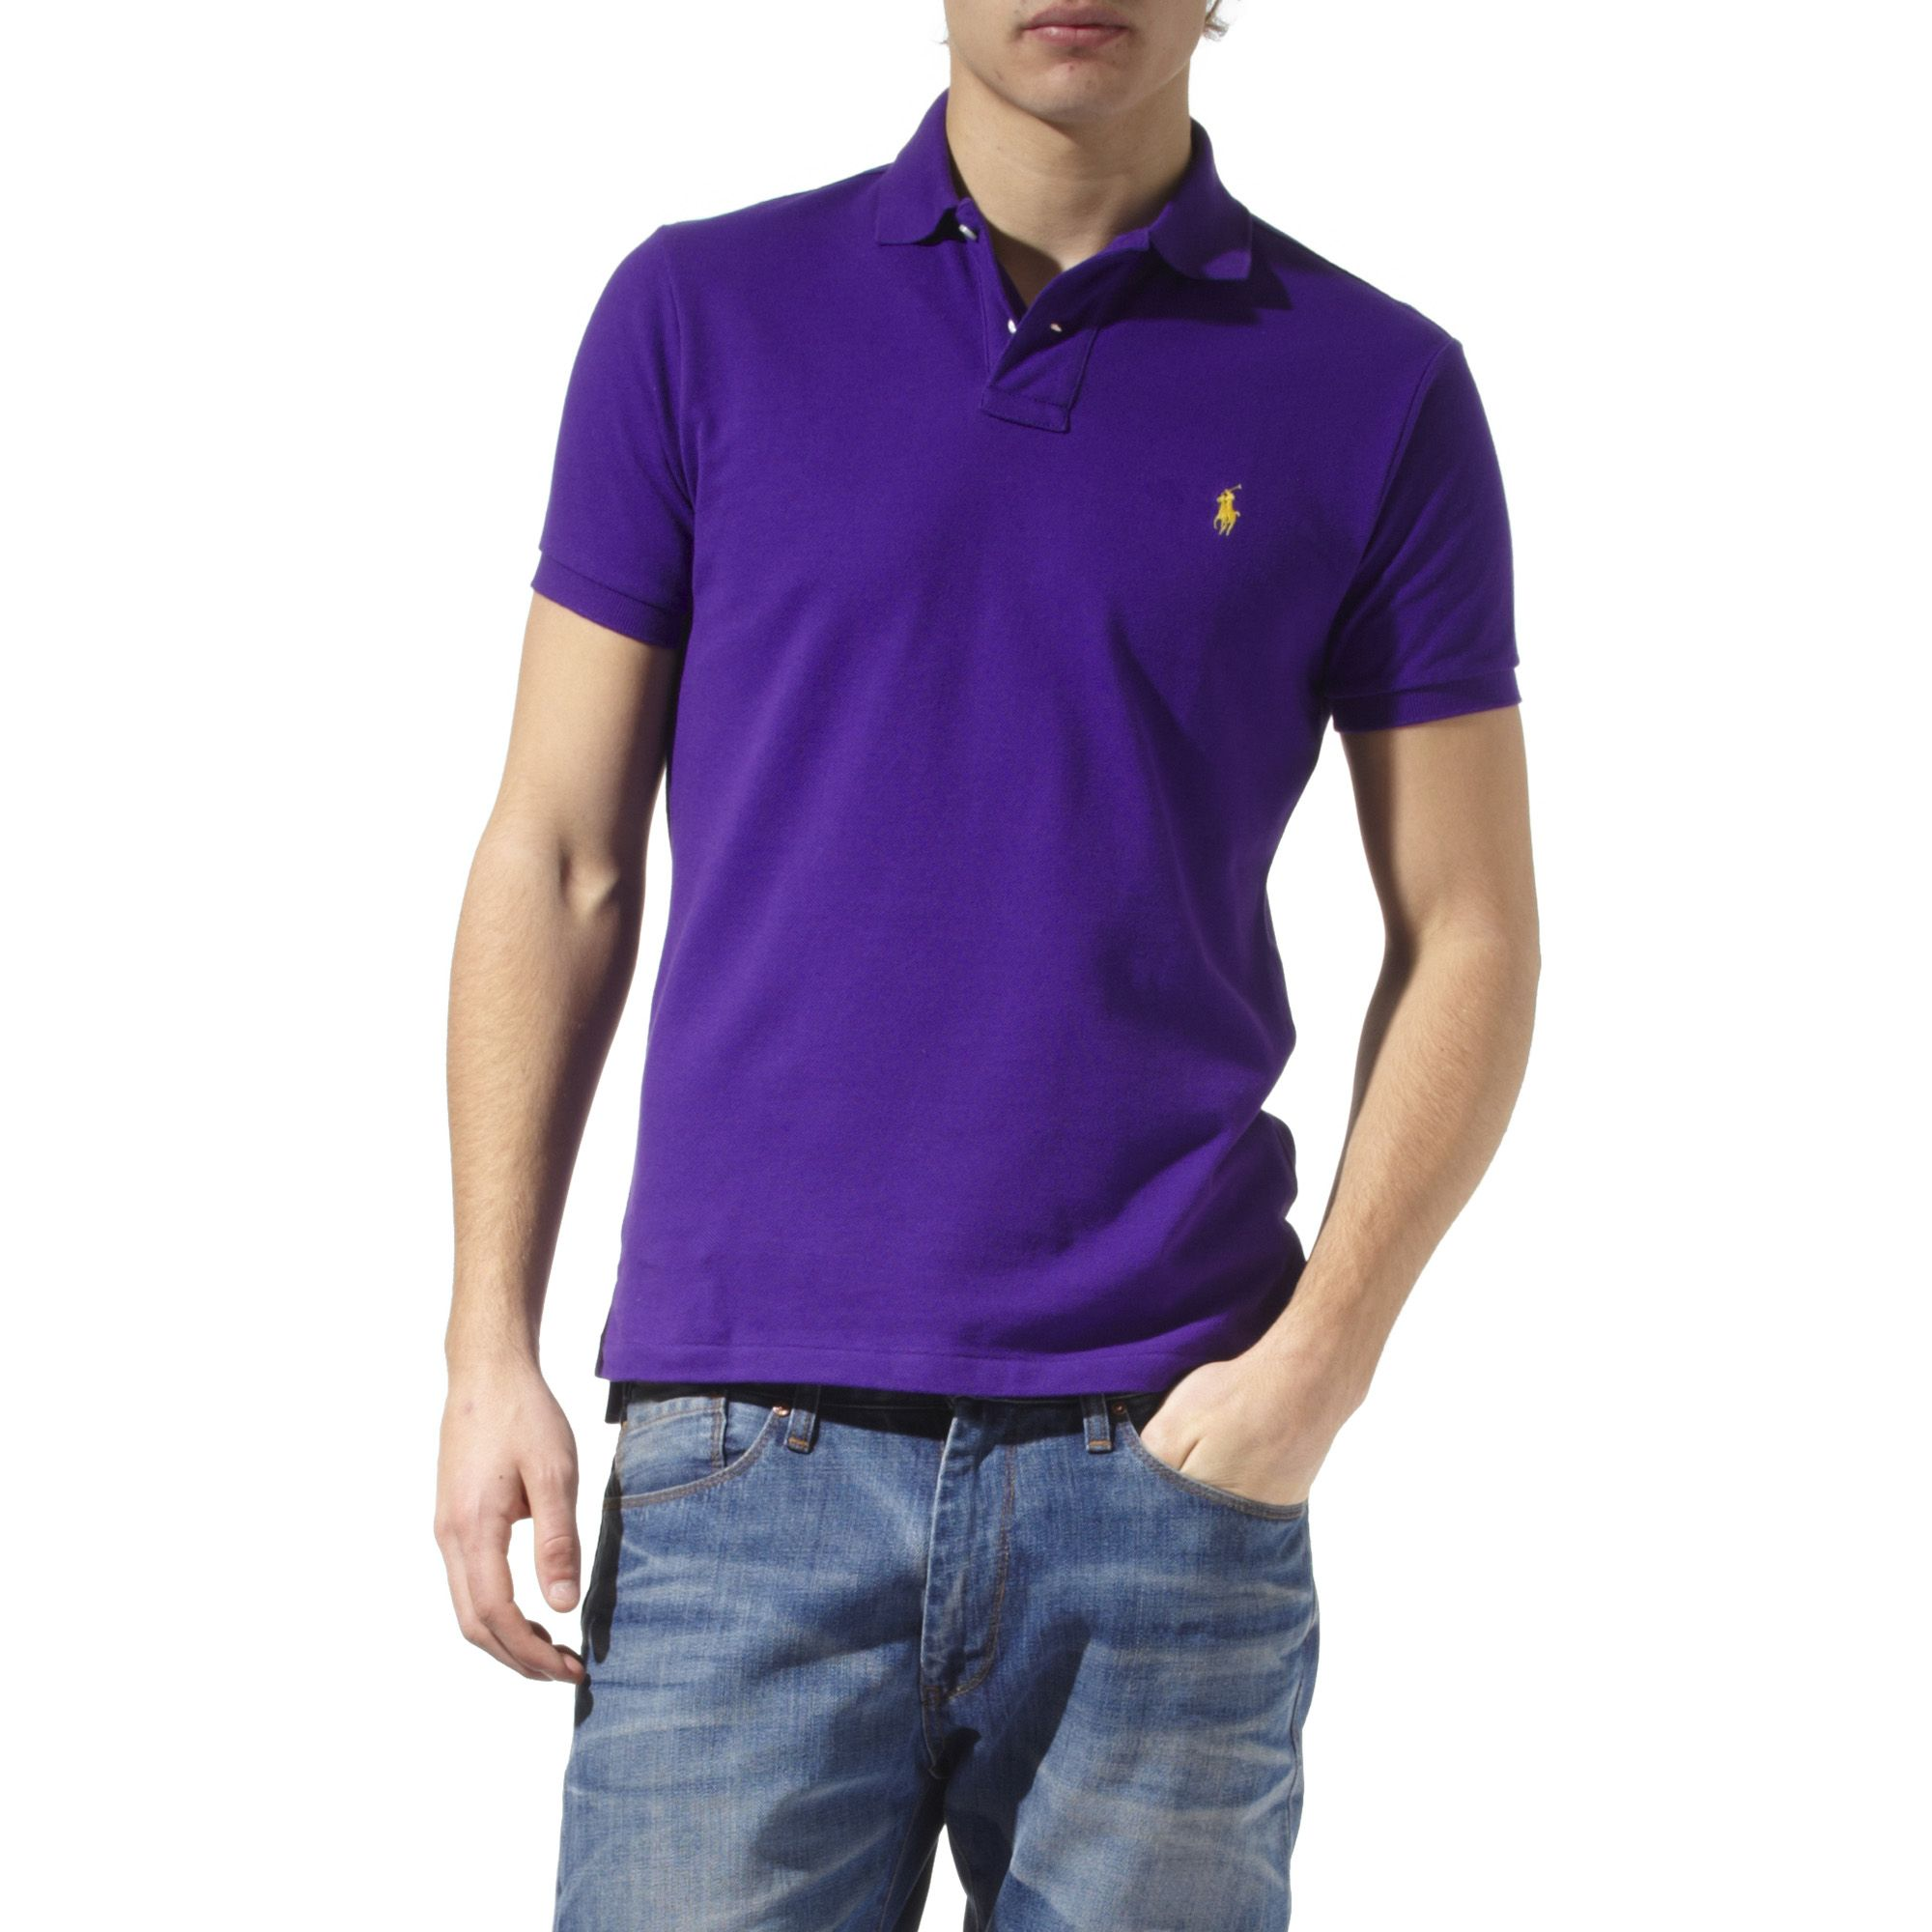 ralph lauren slim fit polo shirt in purple for men lyst. Black Bedroom Furniture Sets. Home Design Ideas